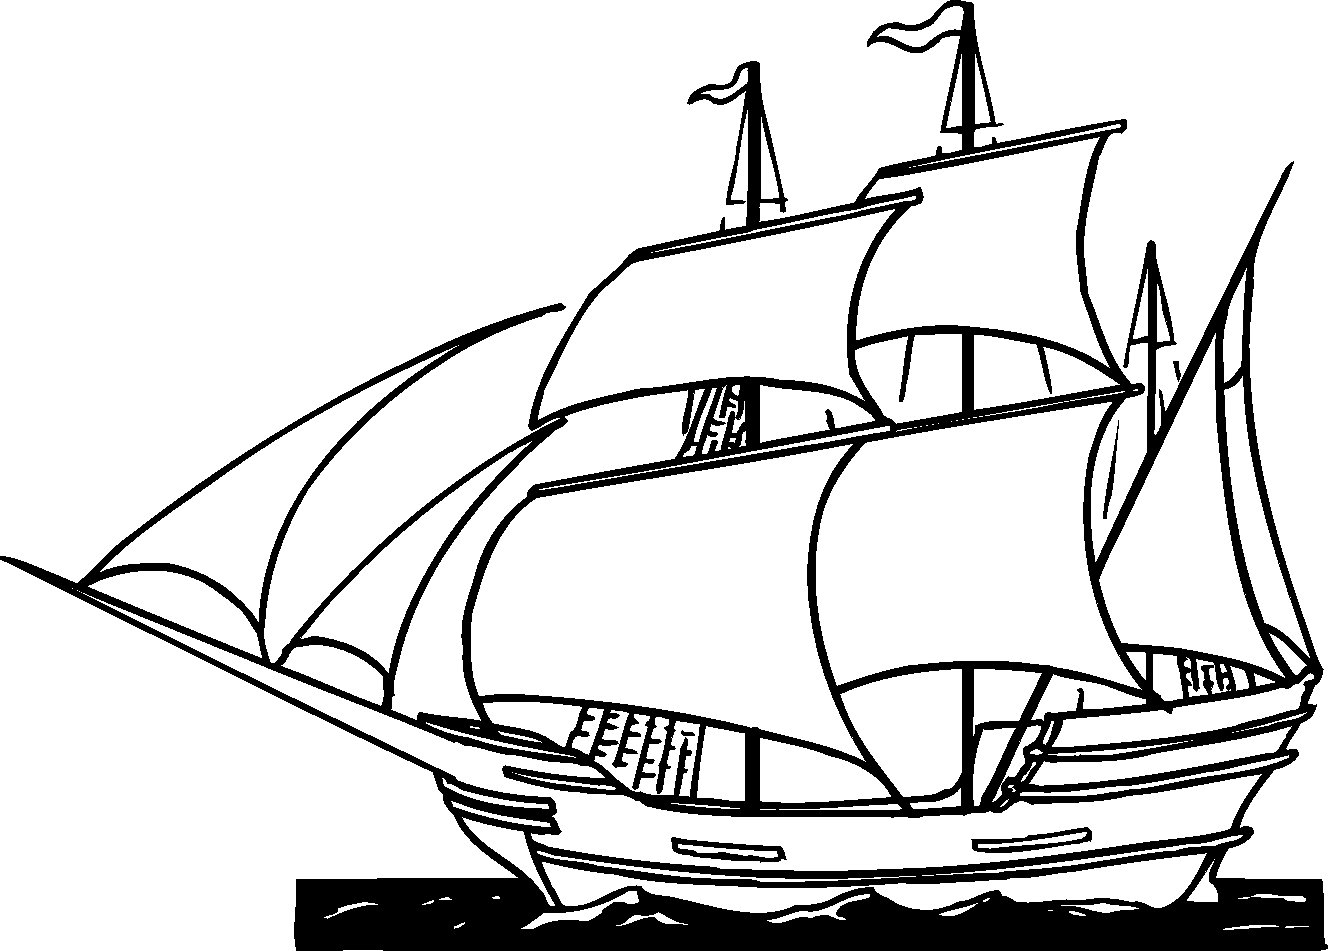 coloring ship pictures sky high tall ships coloring pages ship free sailing coloring ship pictures